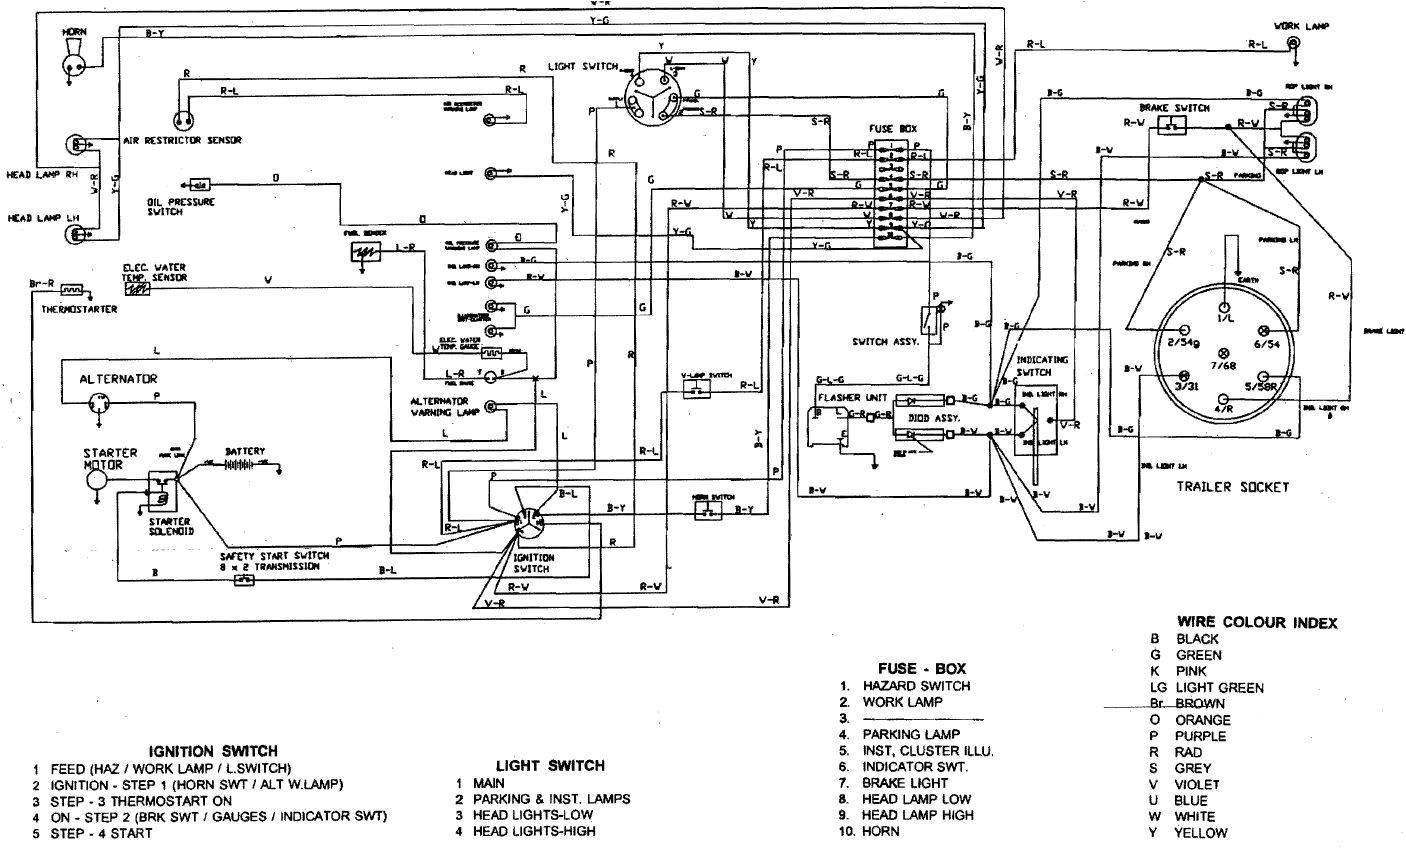 kubota mx5000su engine diagram wiring diagram val kubota mx5000su engine diagram wiring diagram rules kubota b7800